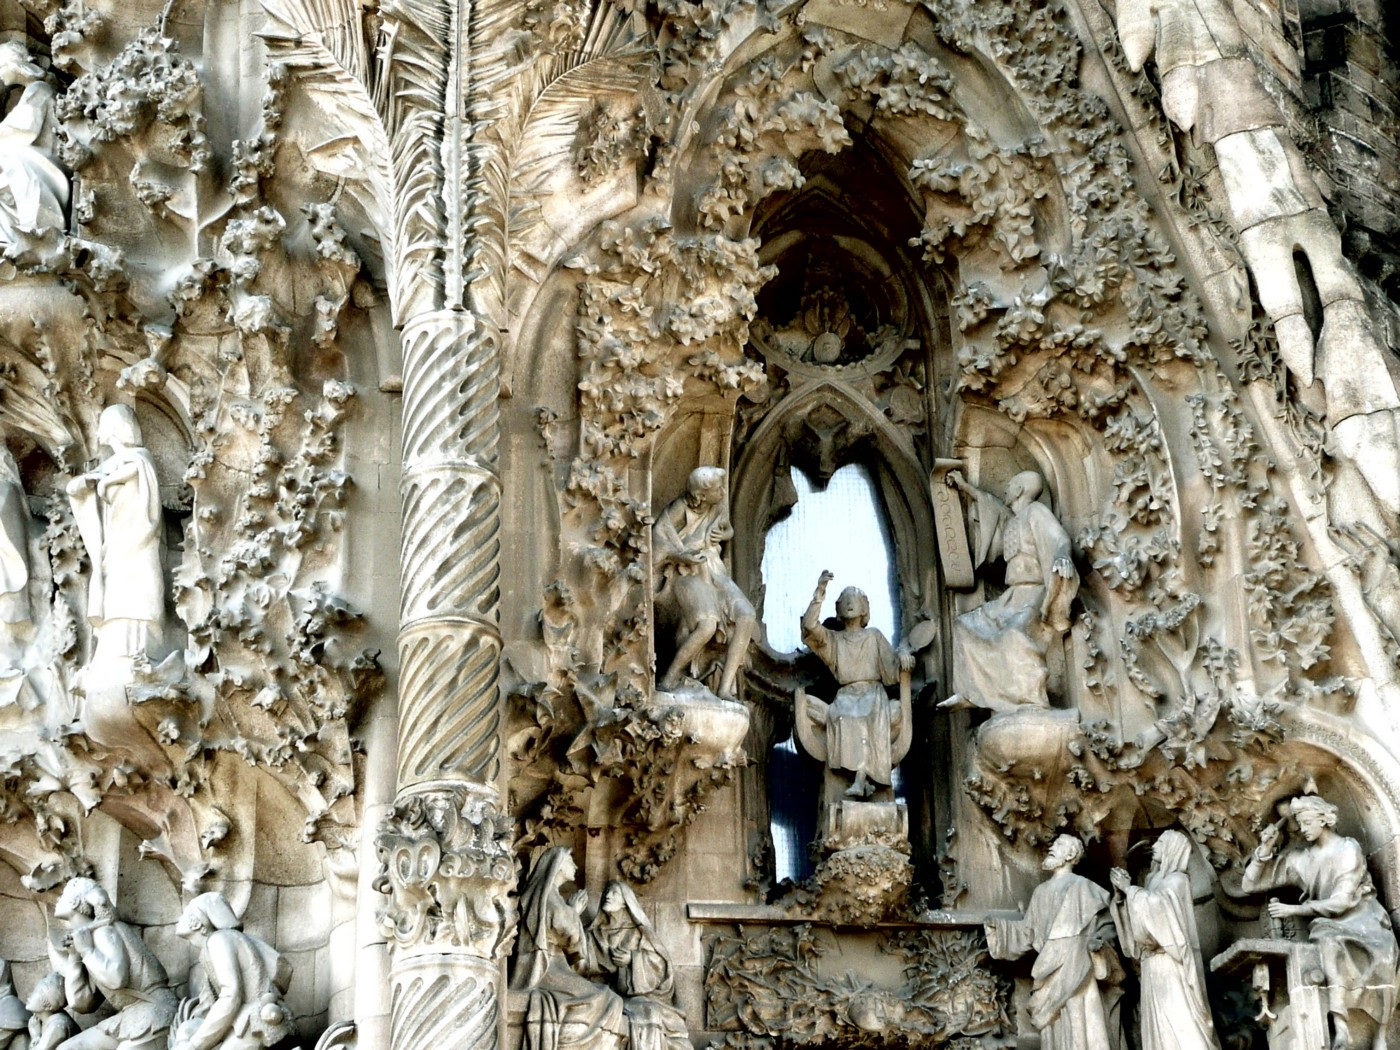 A photo of intricate carved structures on the outside of the Sagrada Família.